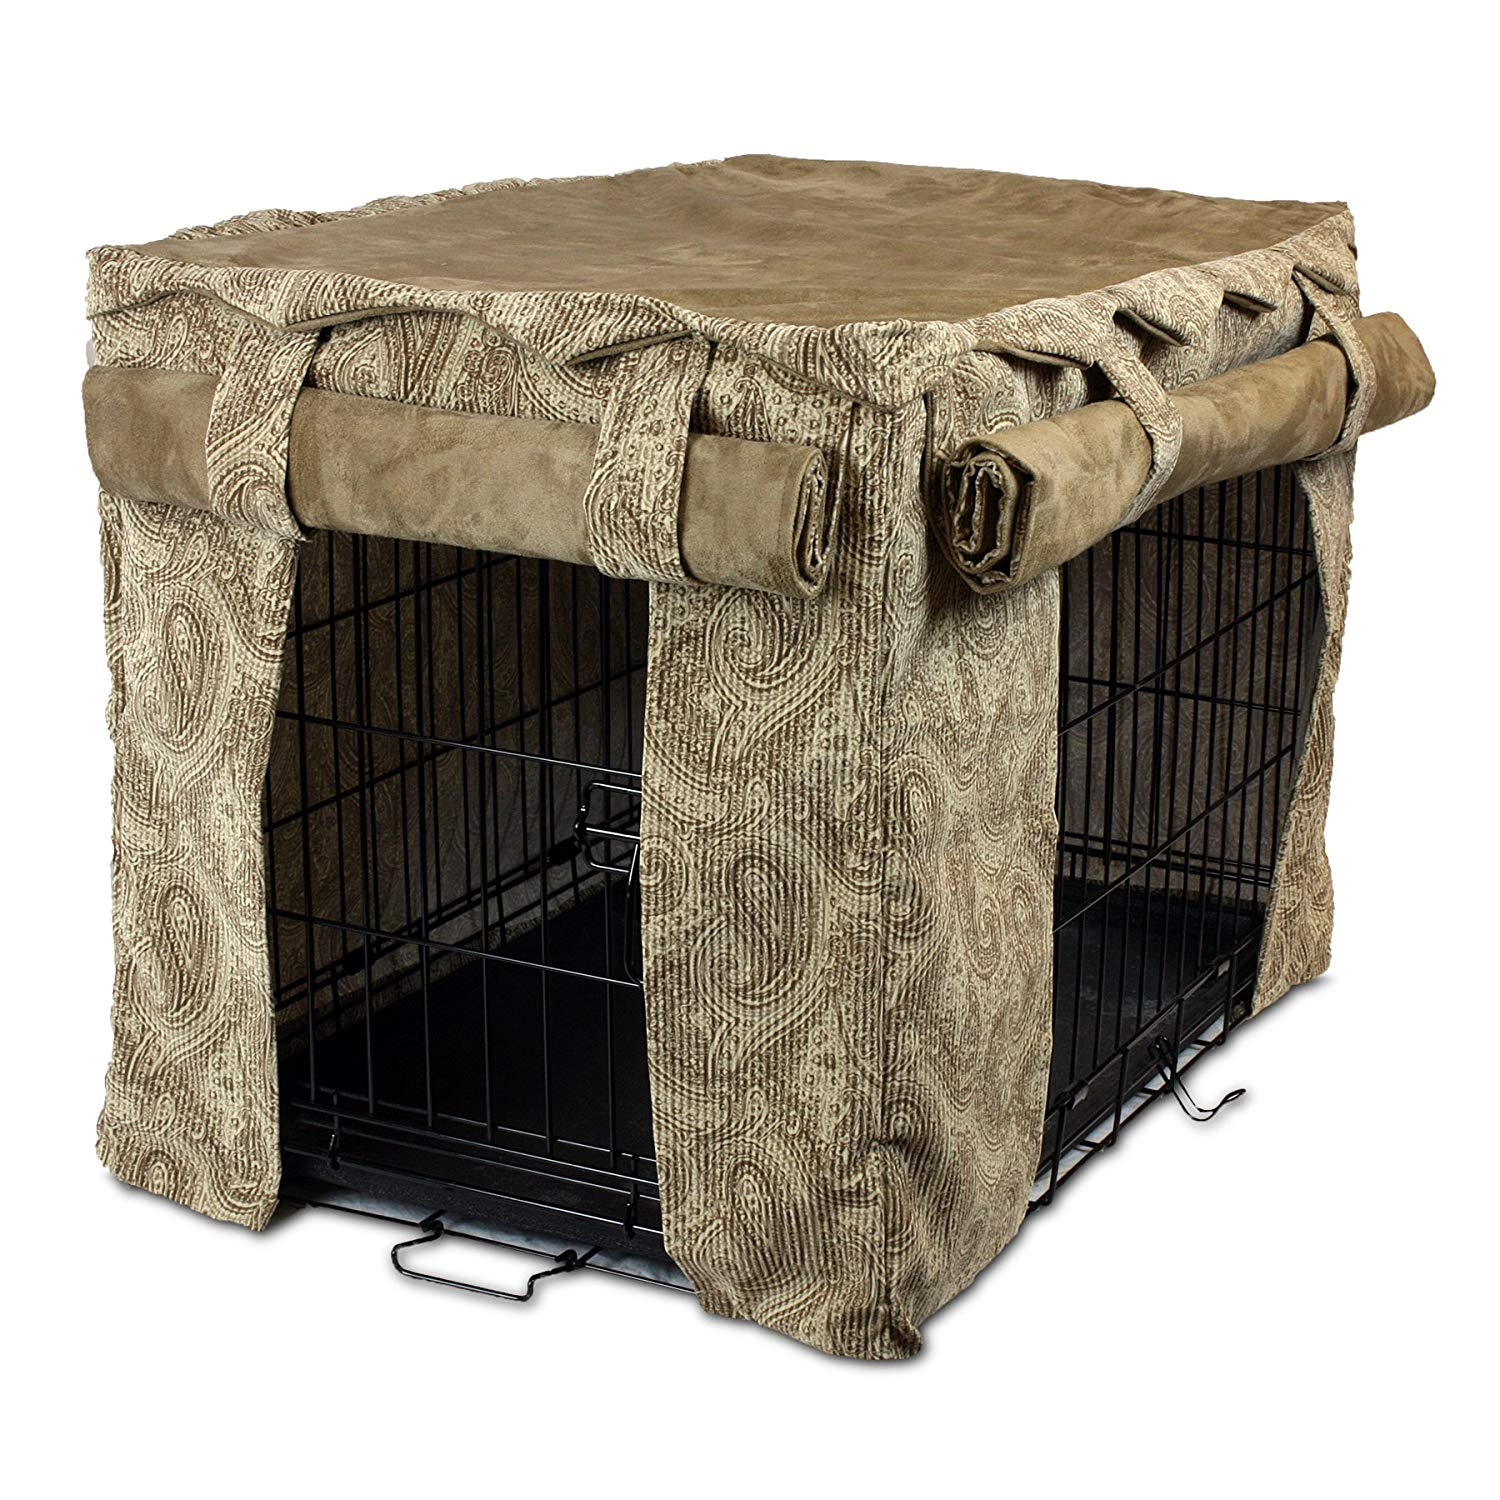 Snoozer Cabana Pet Crate Cover, 48 by 30 by 33-Inch, XX-Large, Sicilly Bone/Peat